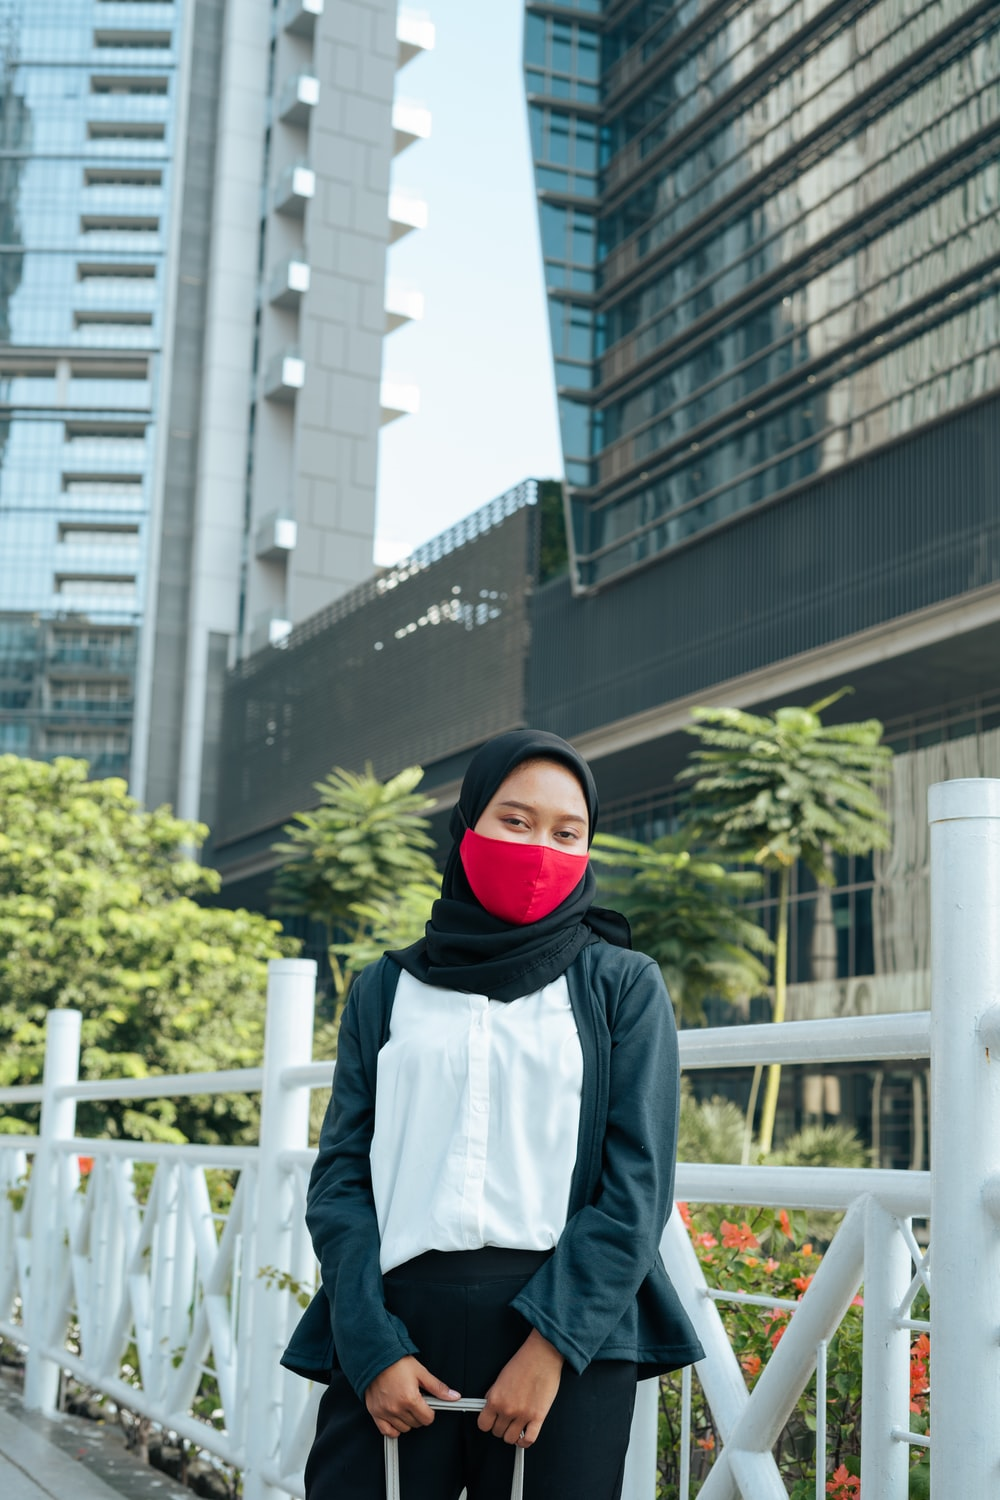 woman in black hijab standing near white metal fence during daytime